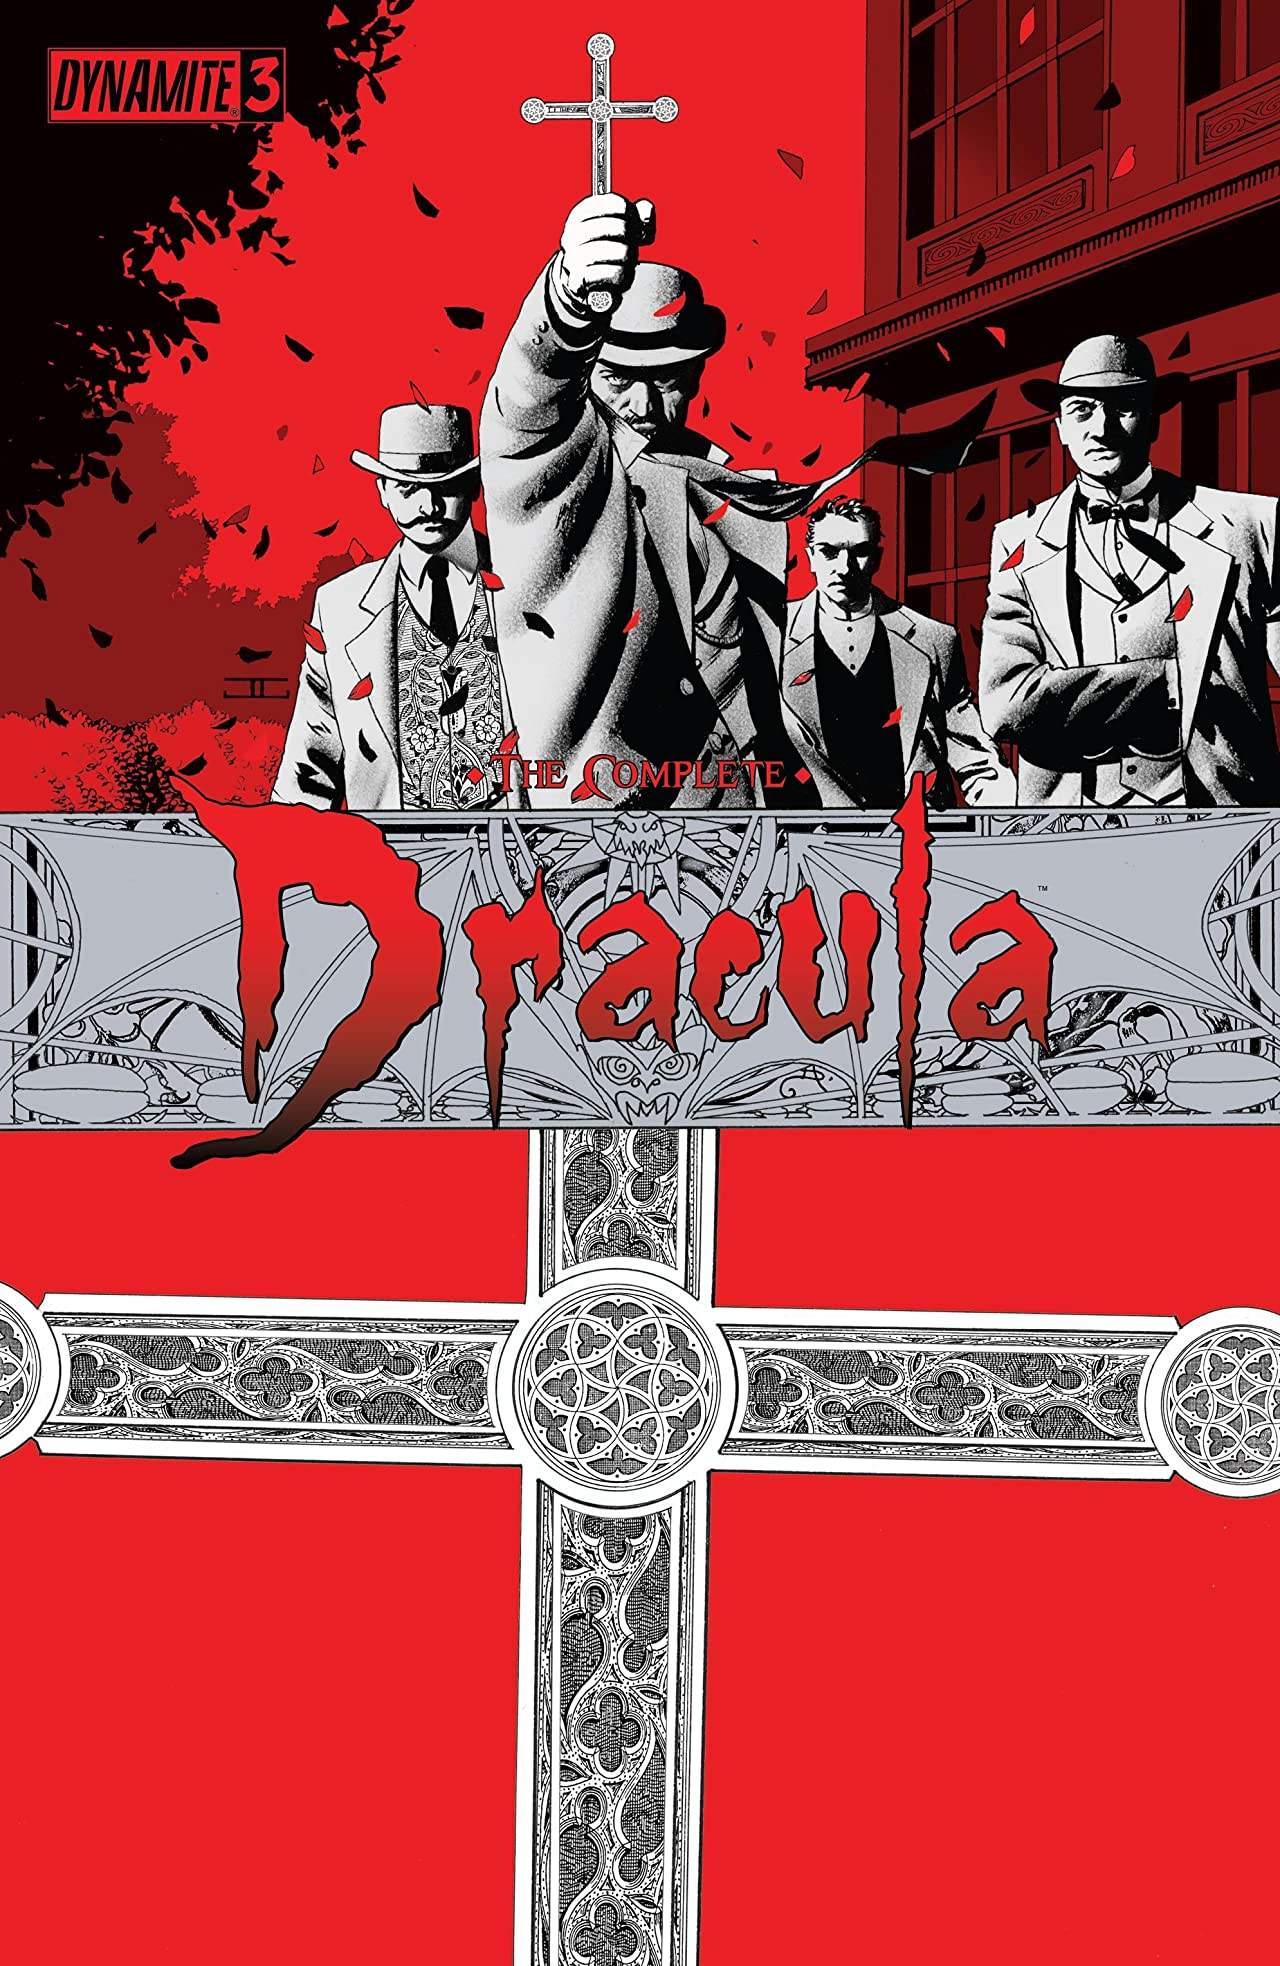 The Complete Dracula #3 (of 5)